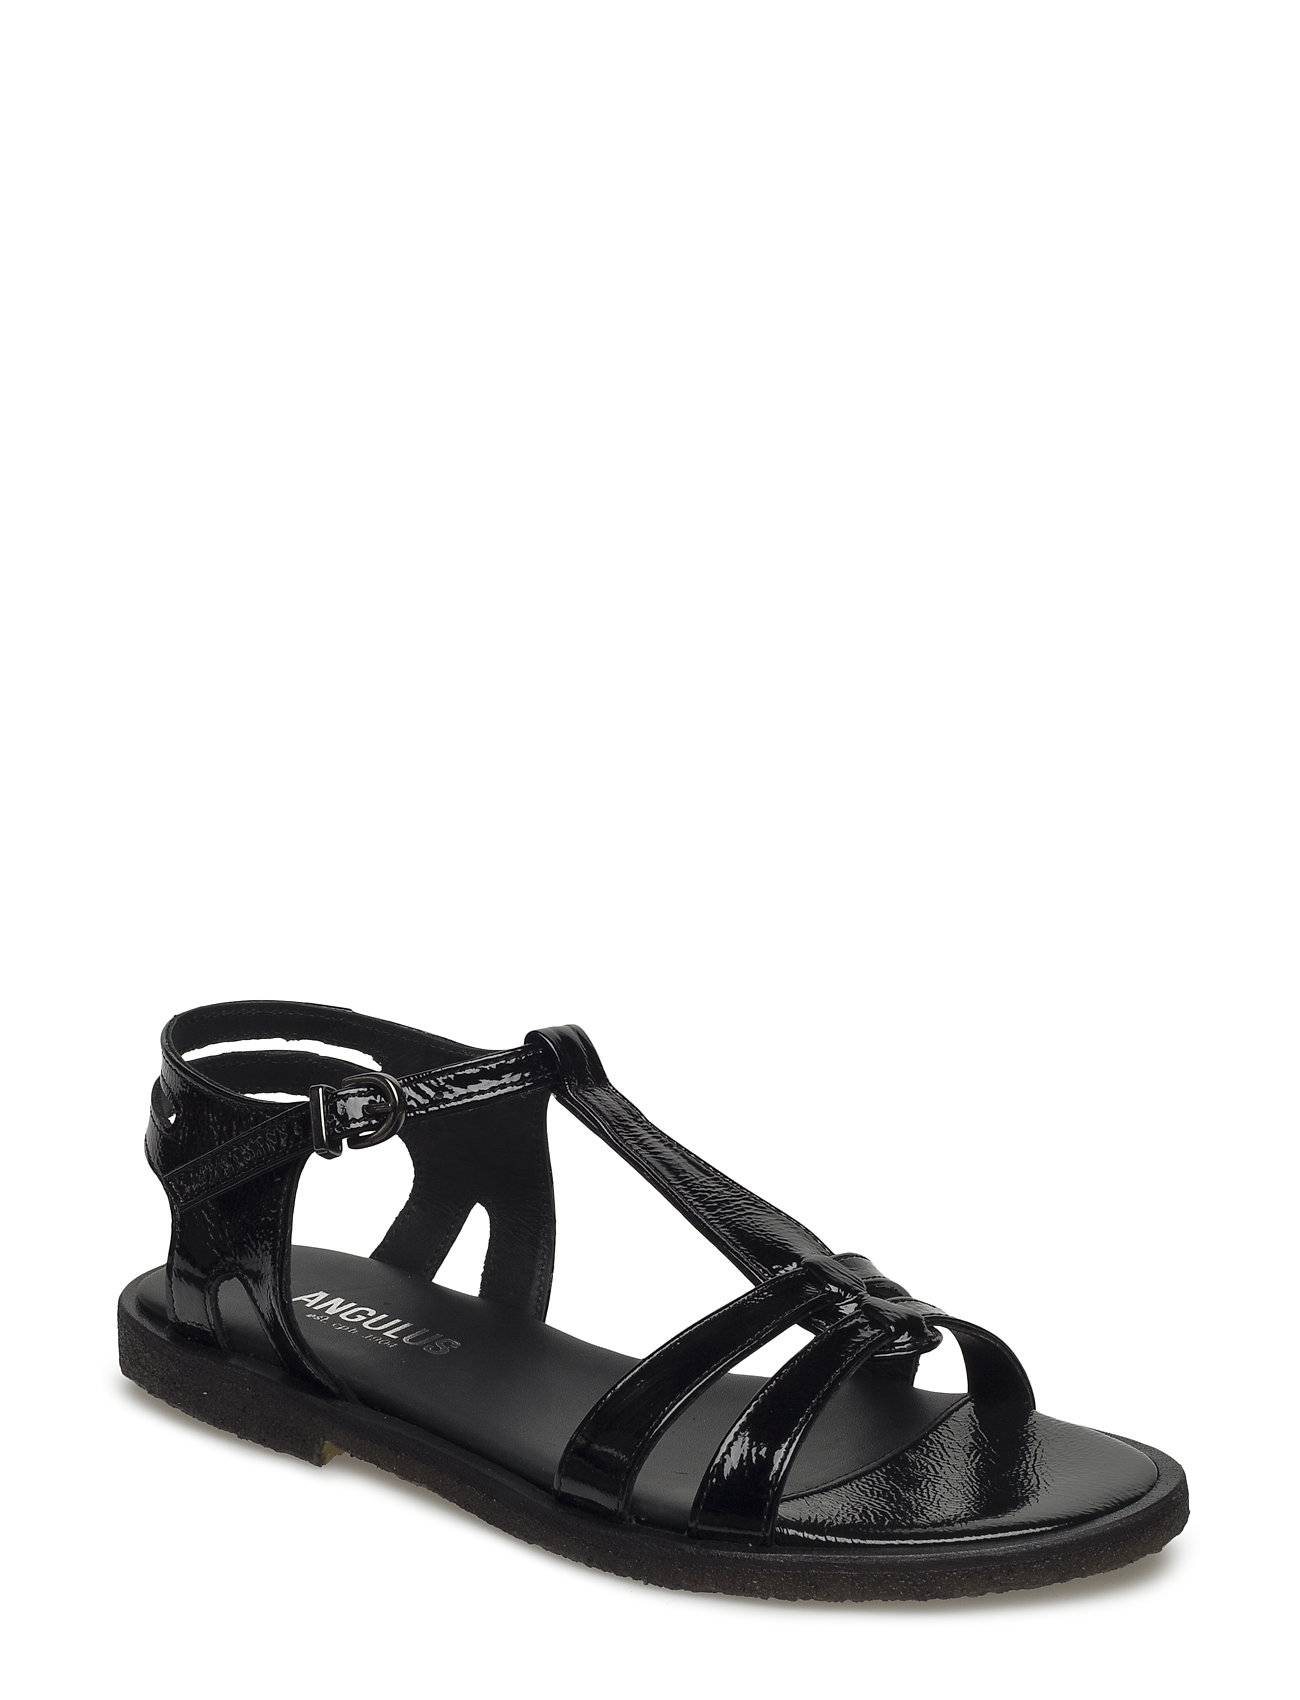 ANGULUS Sandal With Leather Sole